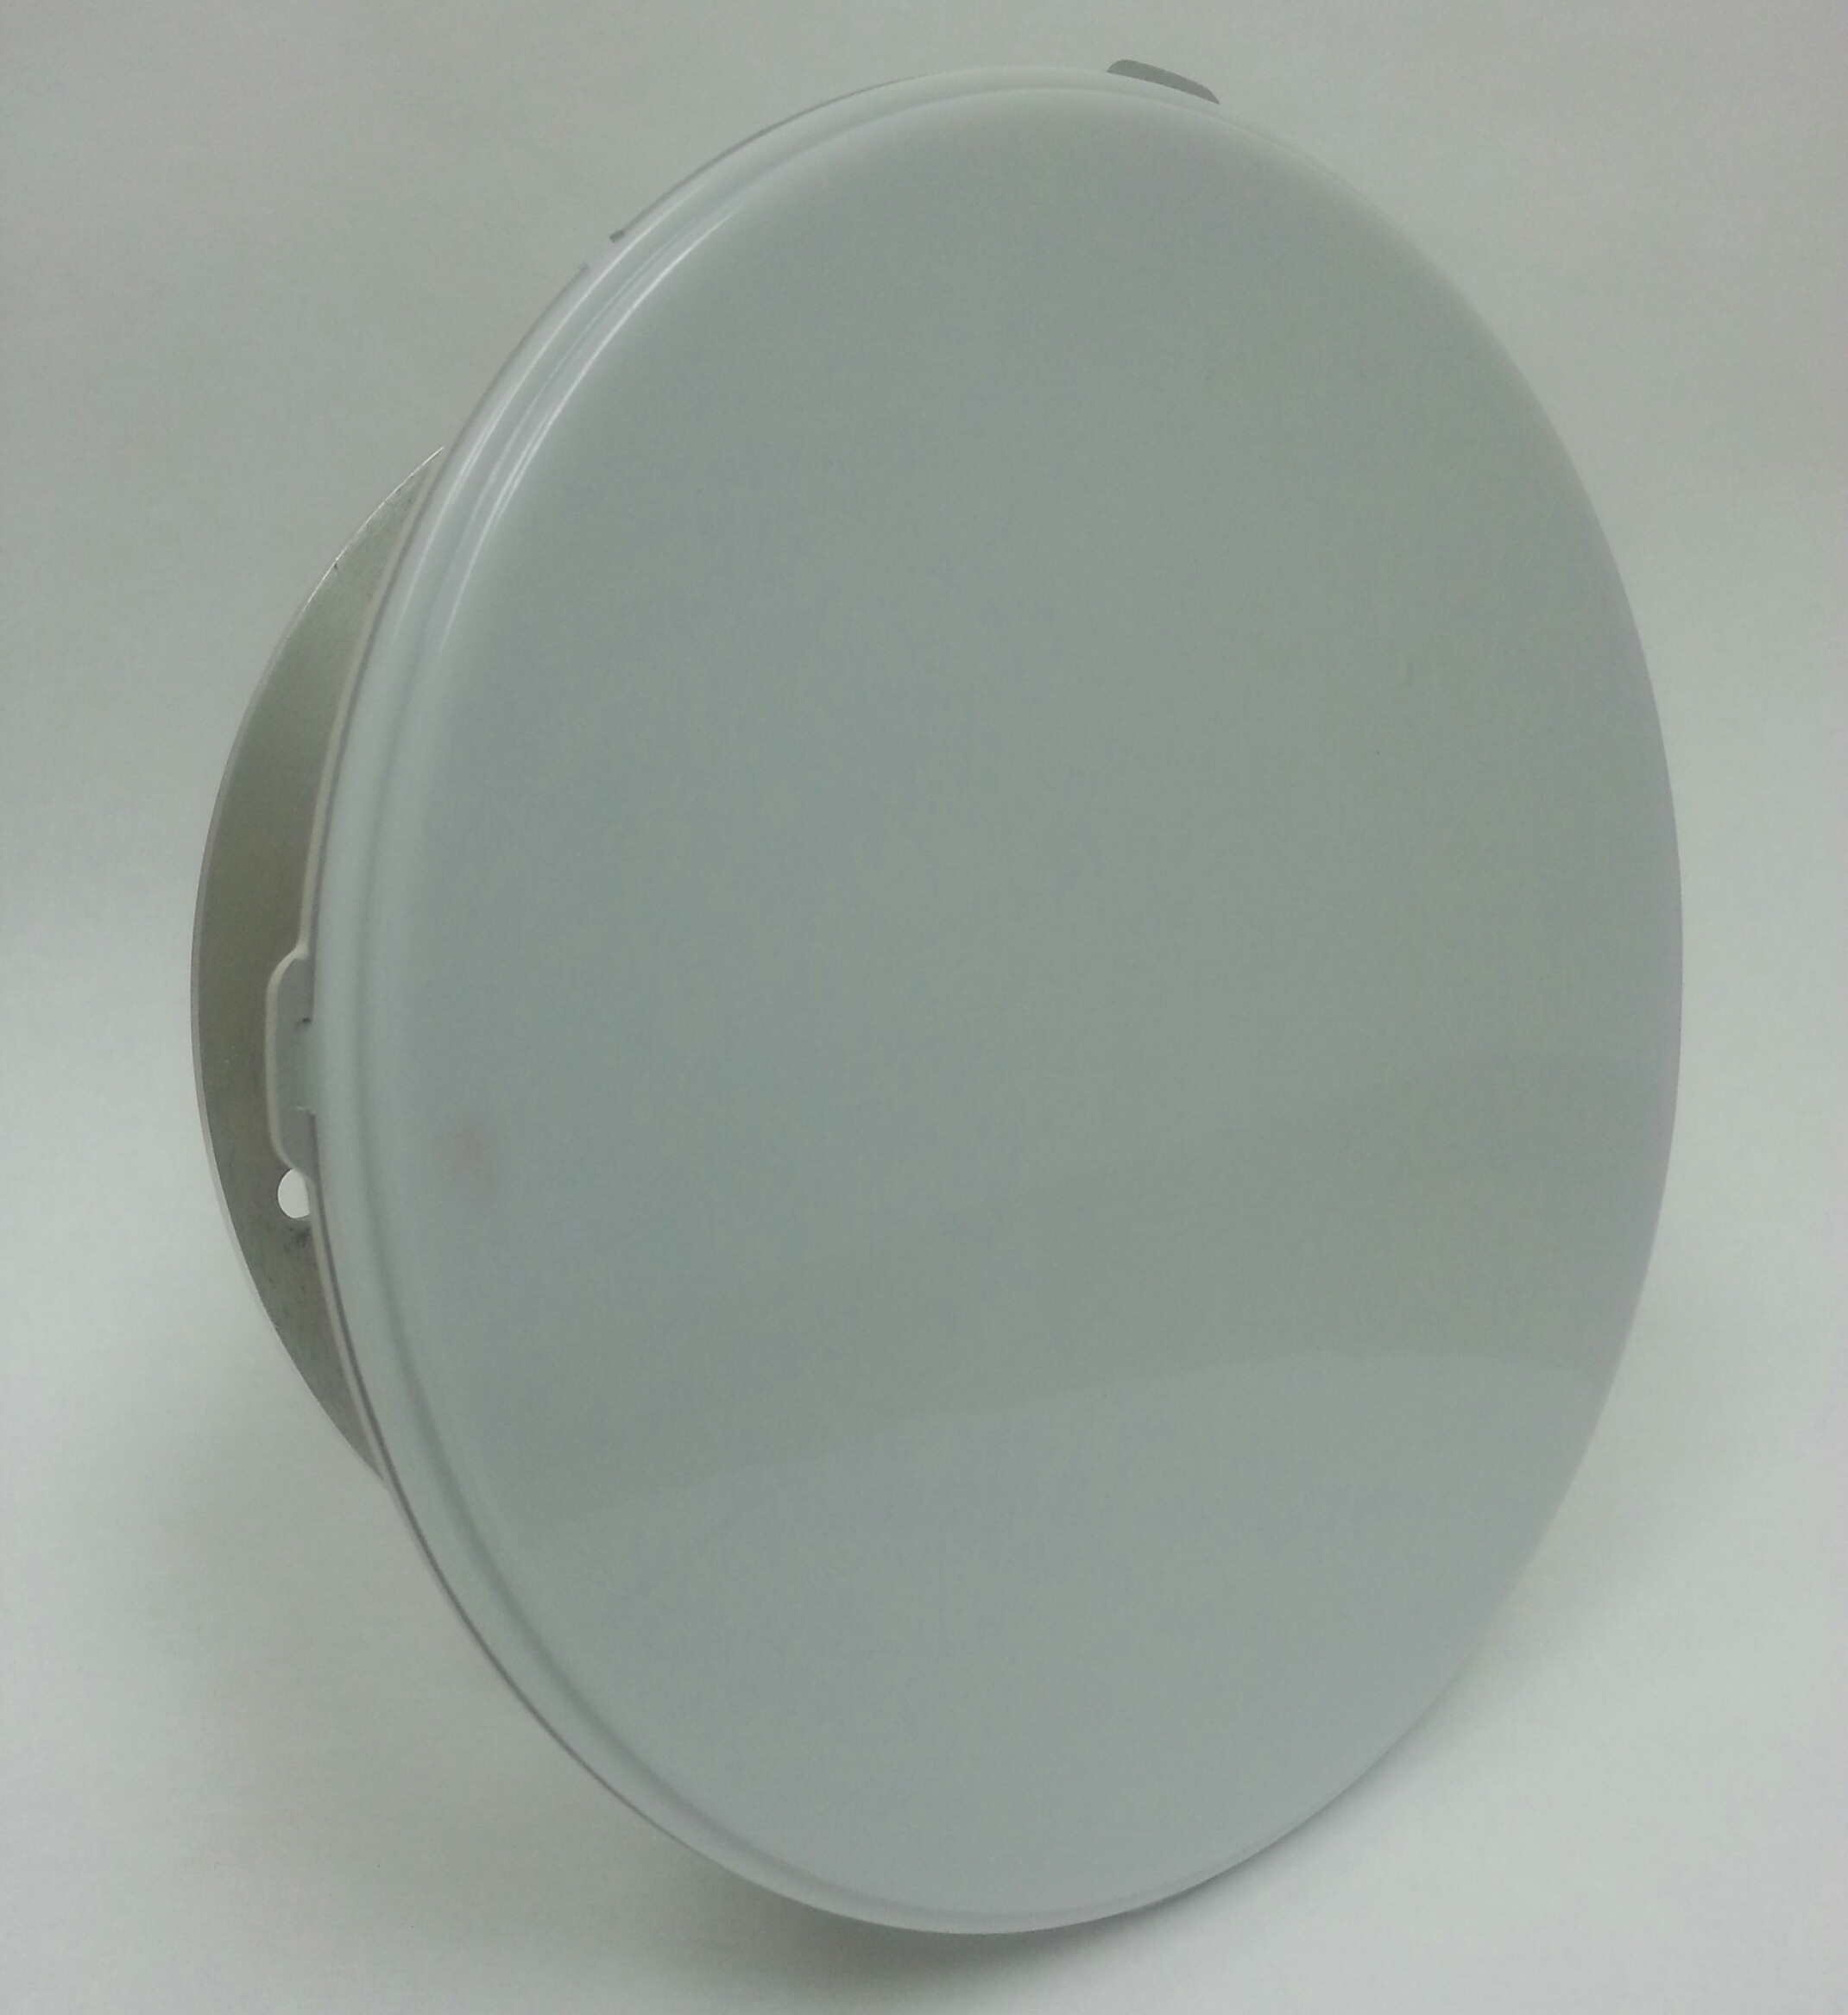 New 71-86GHz 20cm 41dBi Low Profile Parabolic Dish